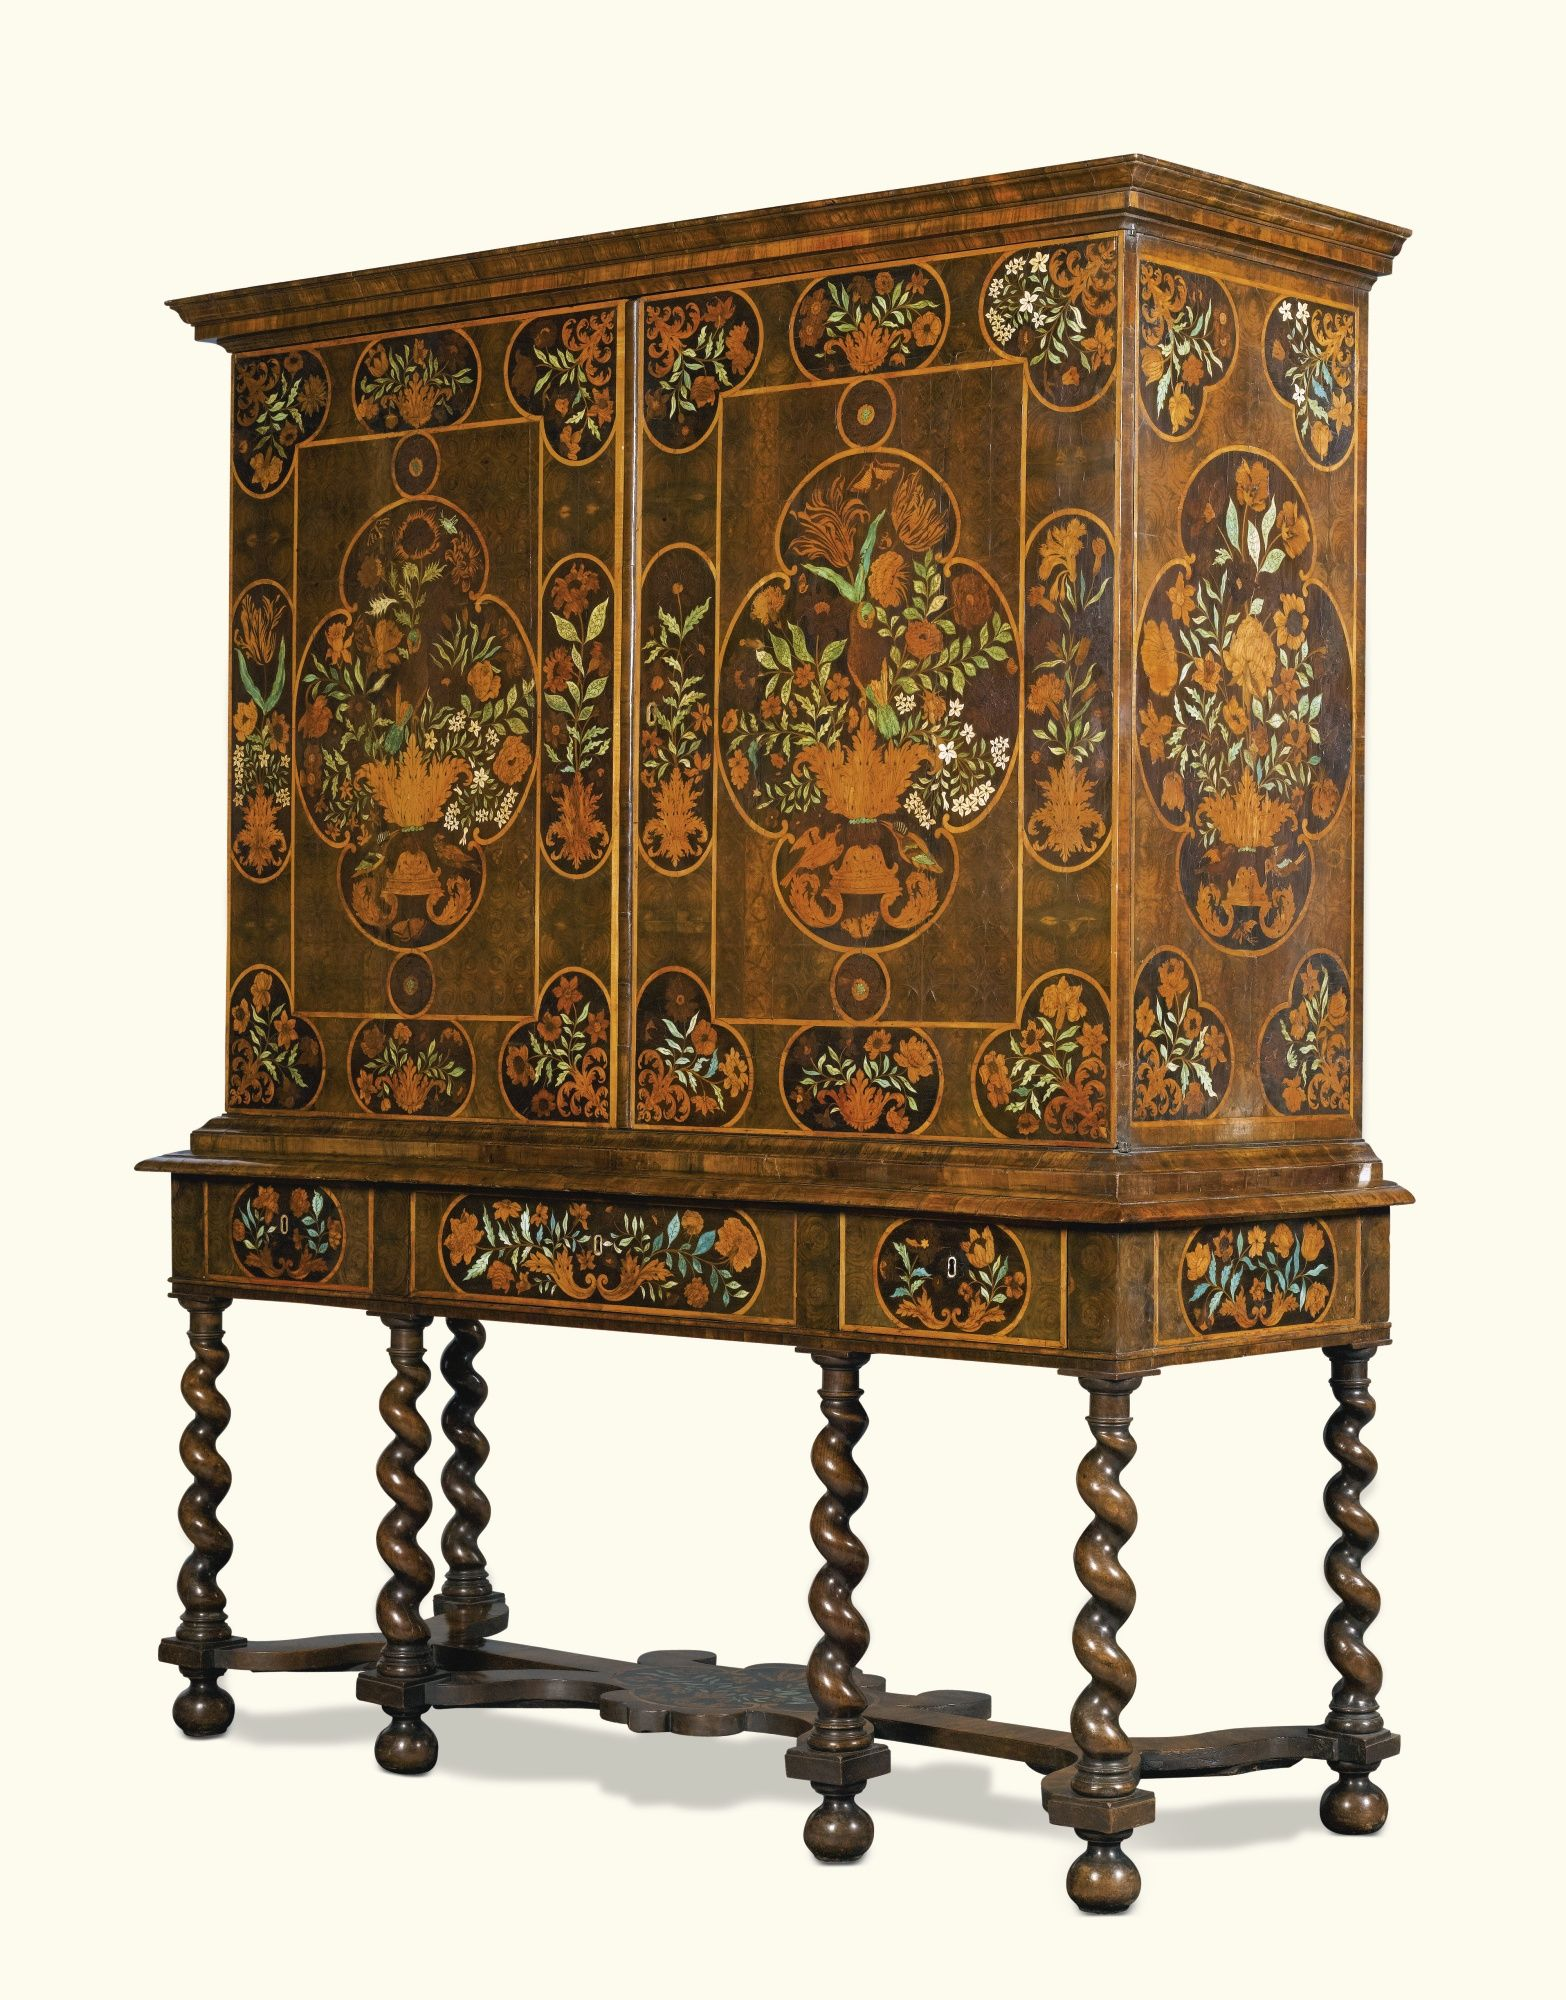 a william and mary oyster veneered olivewood chest on stand<br a william and mary floral marquetry cabinet on stand late 17th century possibly by thomas